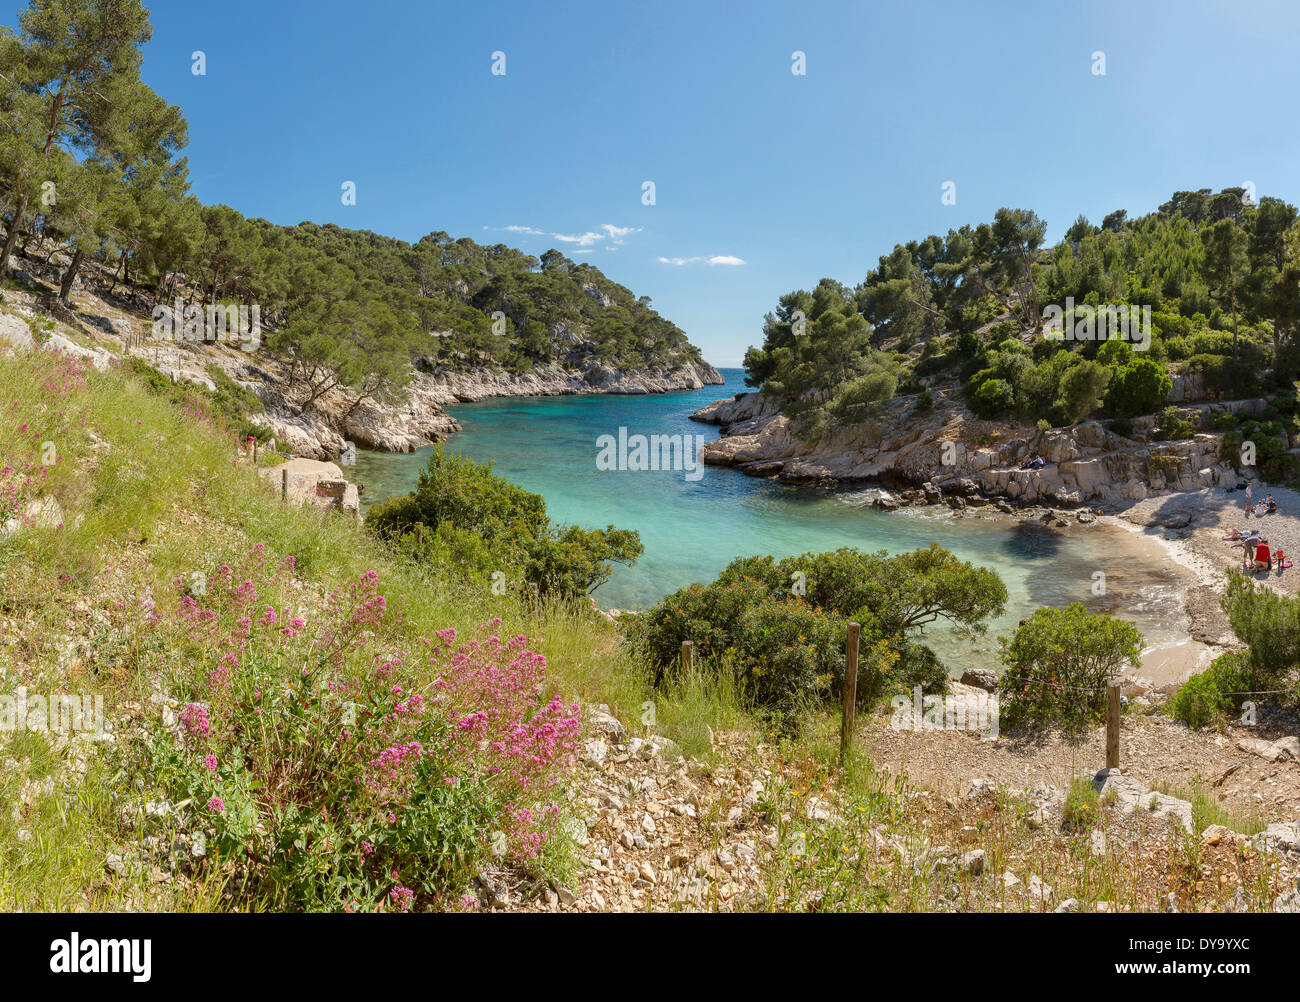 Calanque de Port Pin calanque rocky bay landscape water trees spring mountains sea people Cassis Bouches du Rhone France Euro - Stock Image